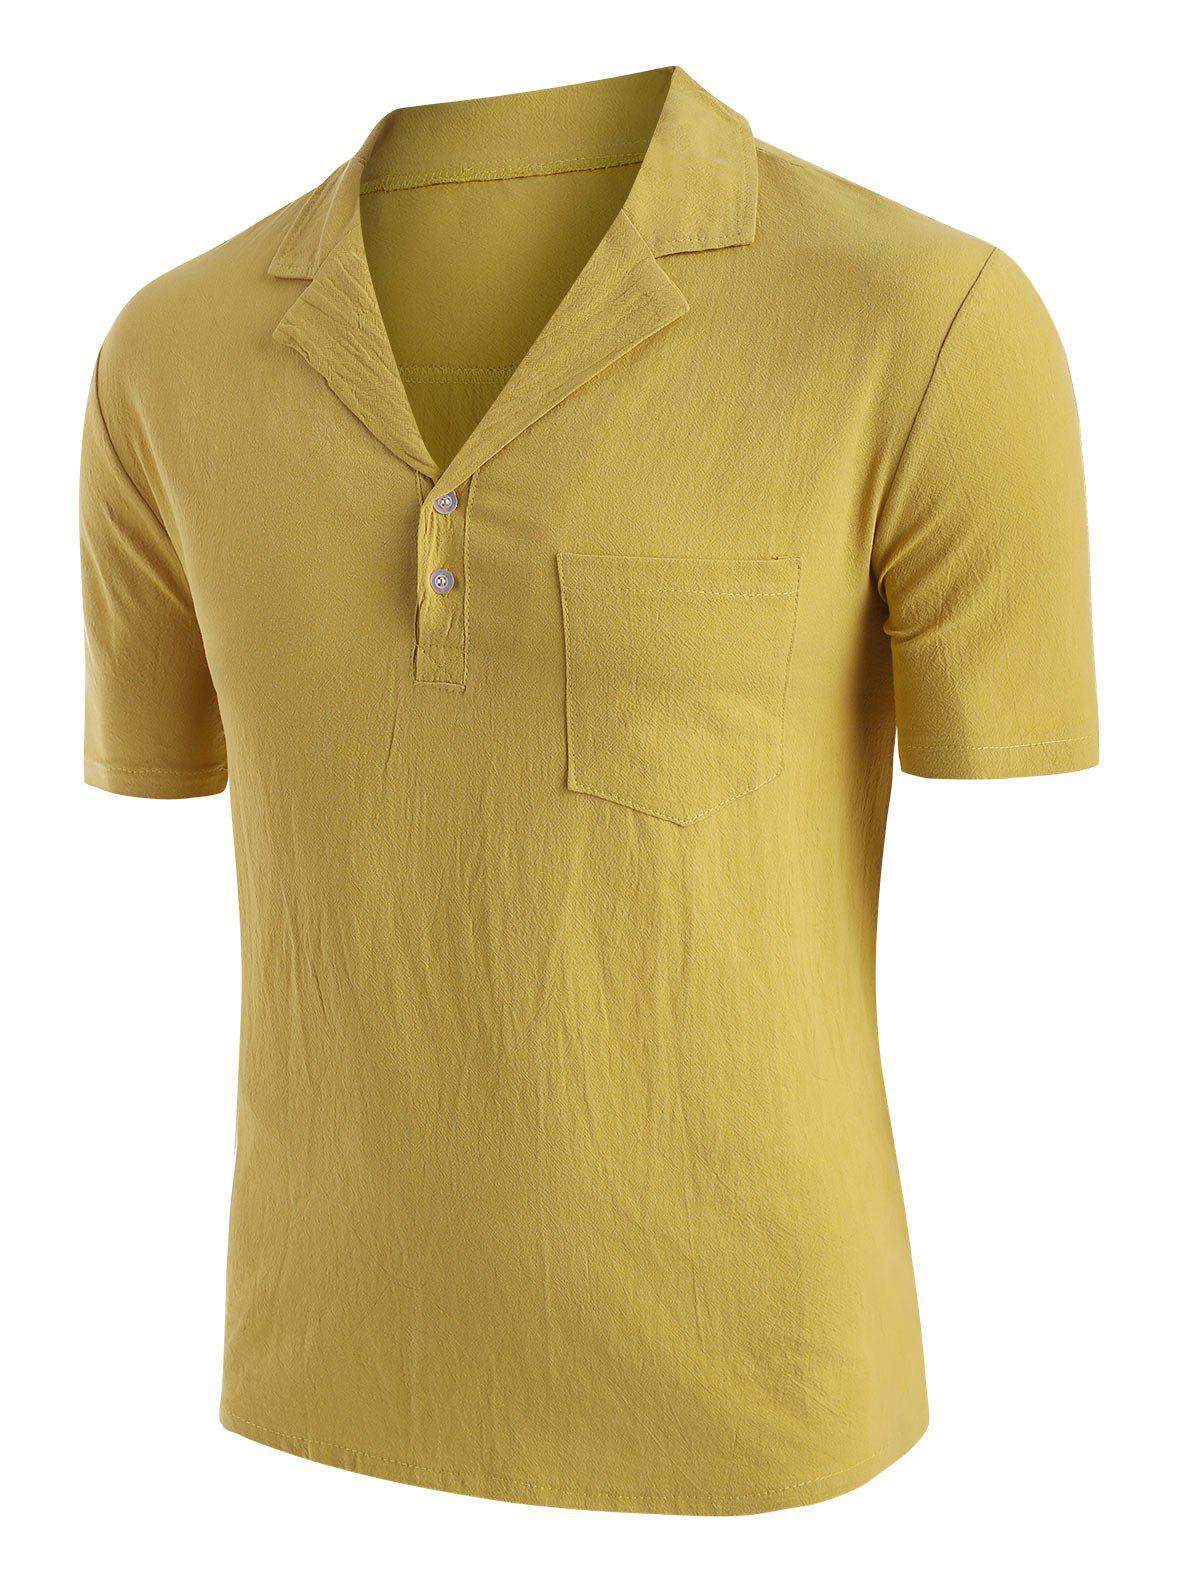 New Solid Color Chest Pocket T-shirt